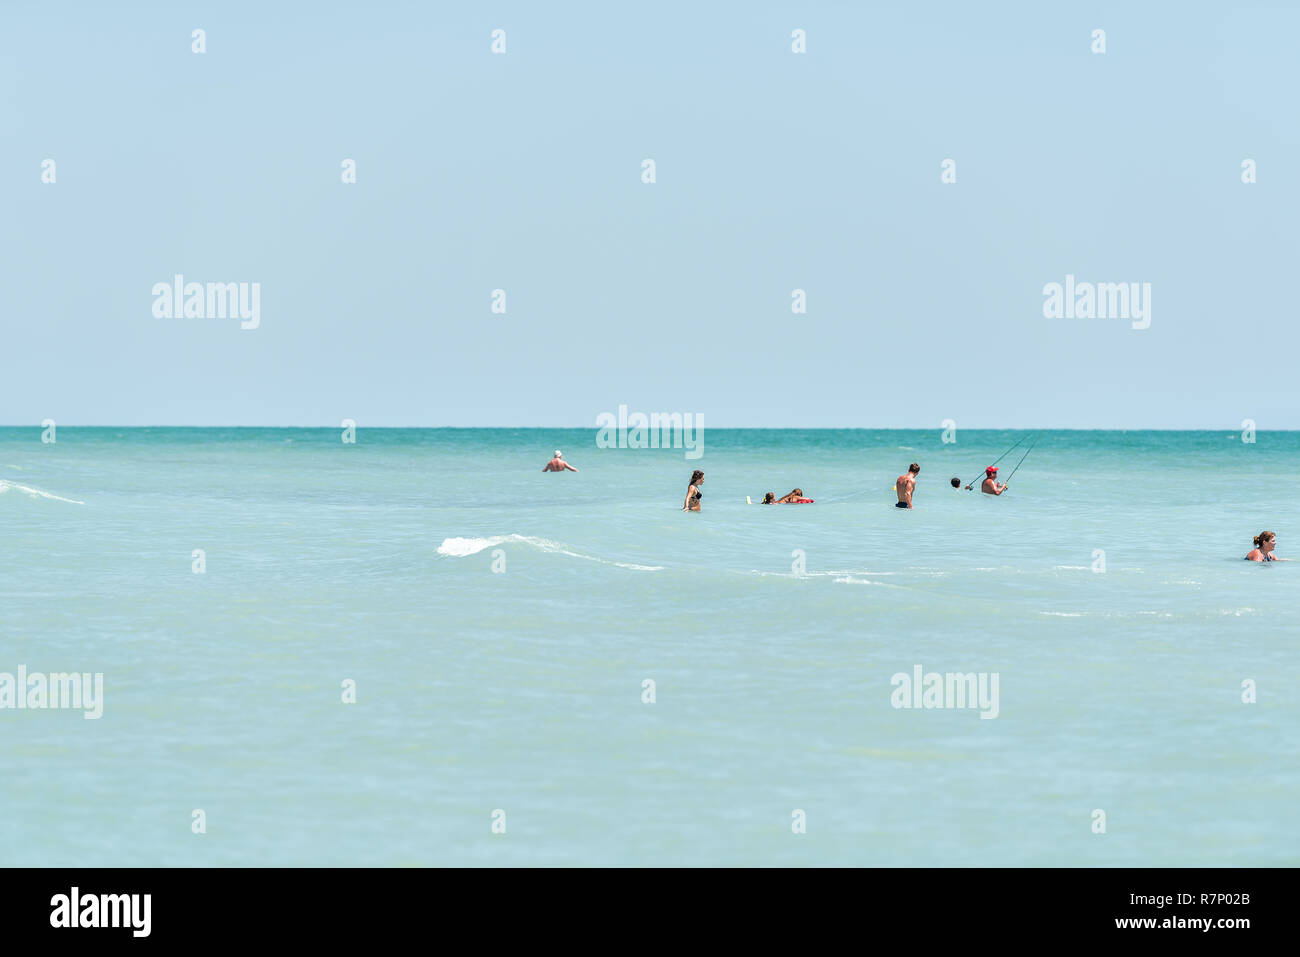 Sanibel Island, USA - April 29, 2018: Bowman's beach, Florida with many people swimming standing on shore in turquoise water on sunny day, fishing Stock Photo